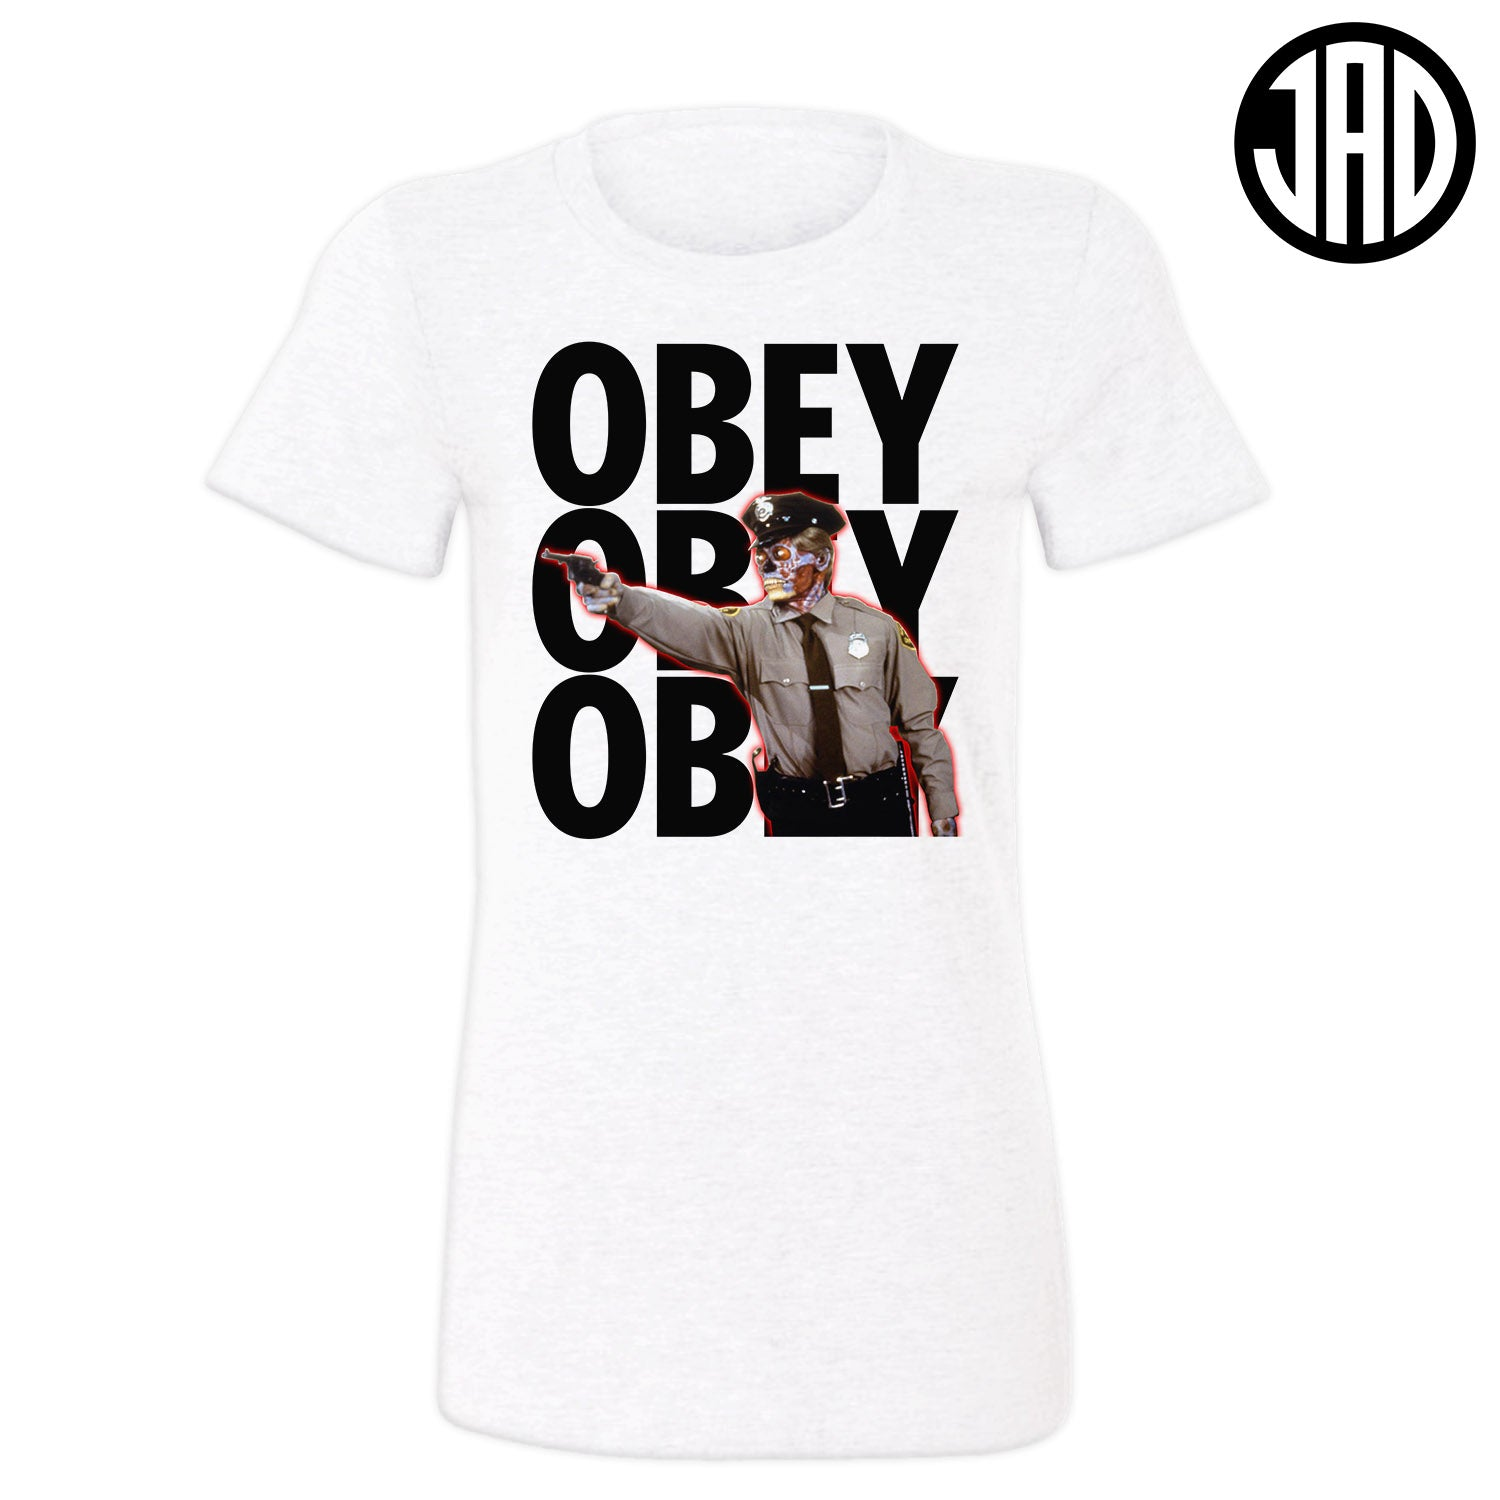 Do Not Question Authority - Women's Tee